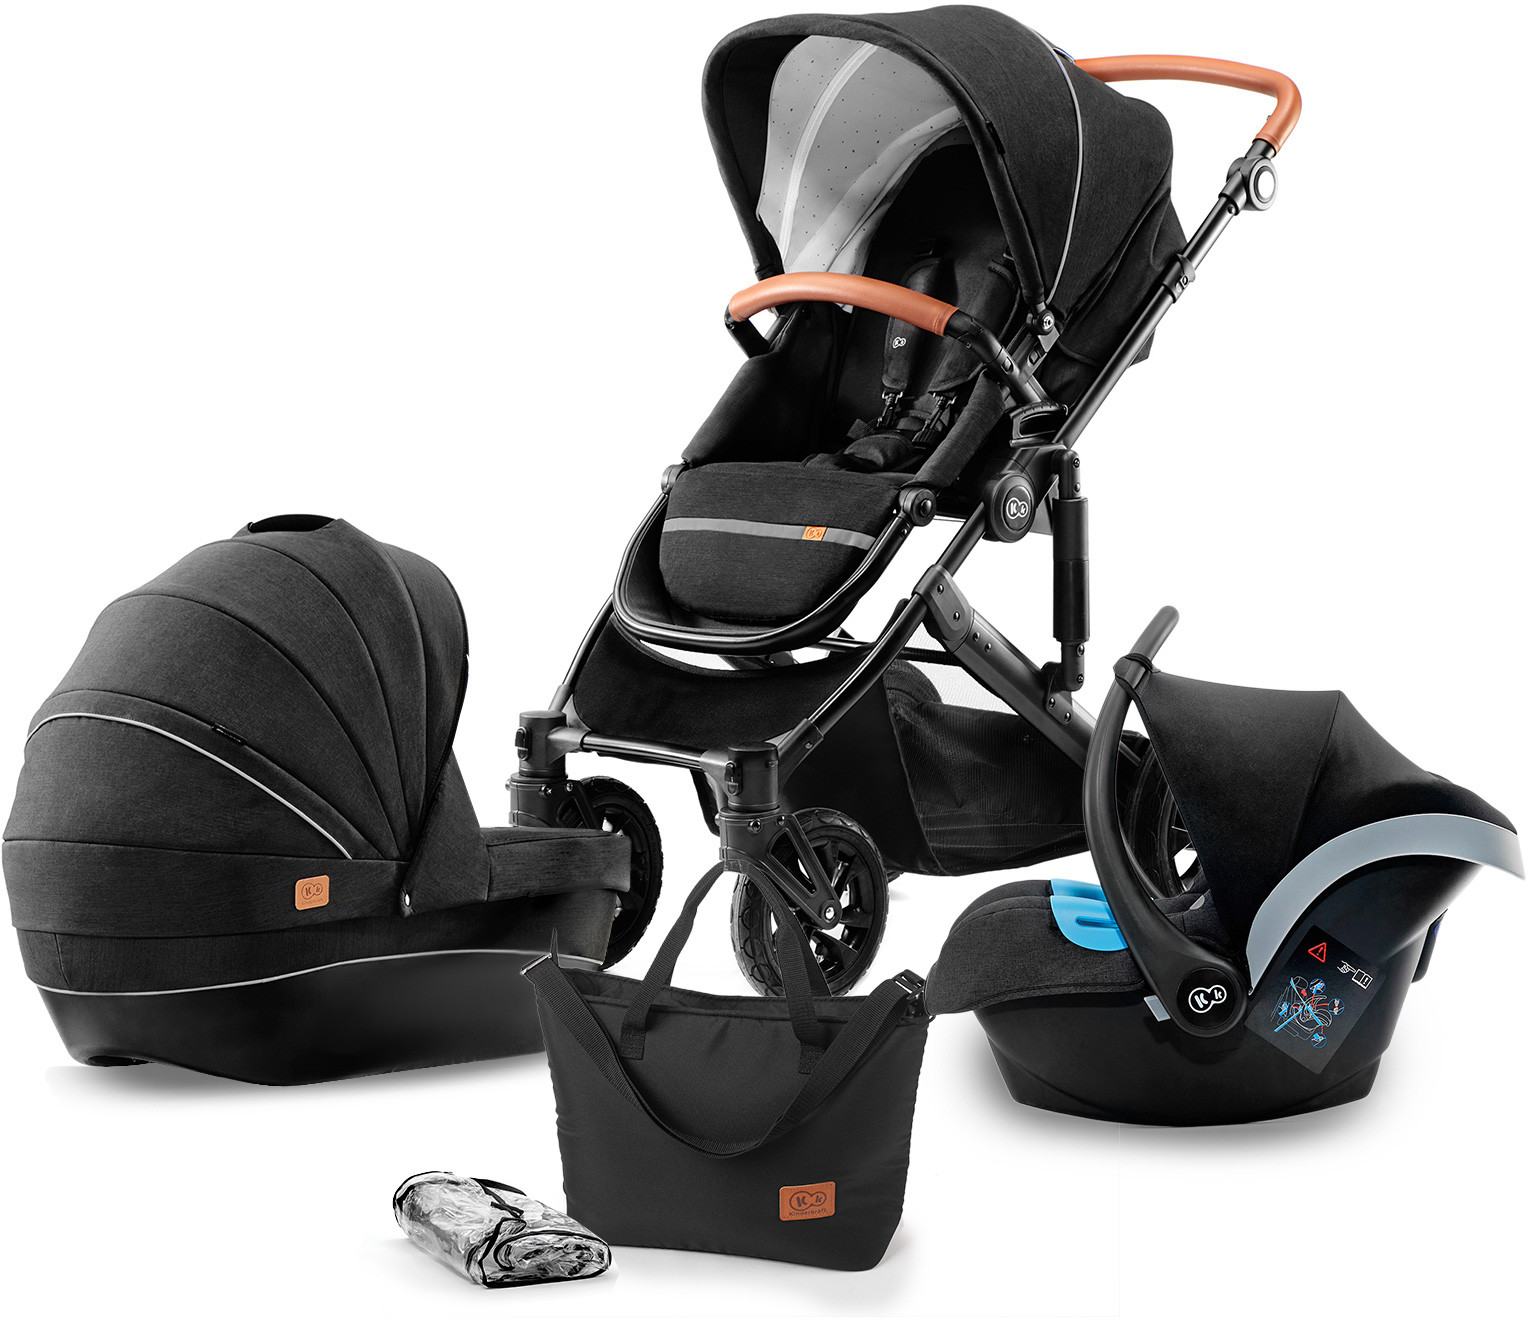 KinderKraft PRIME 3w1 Black